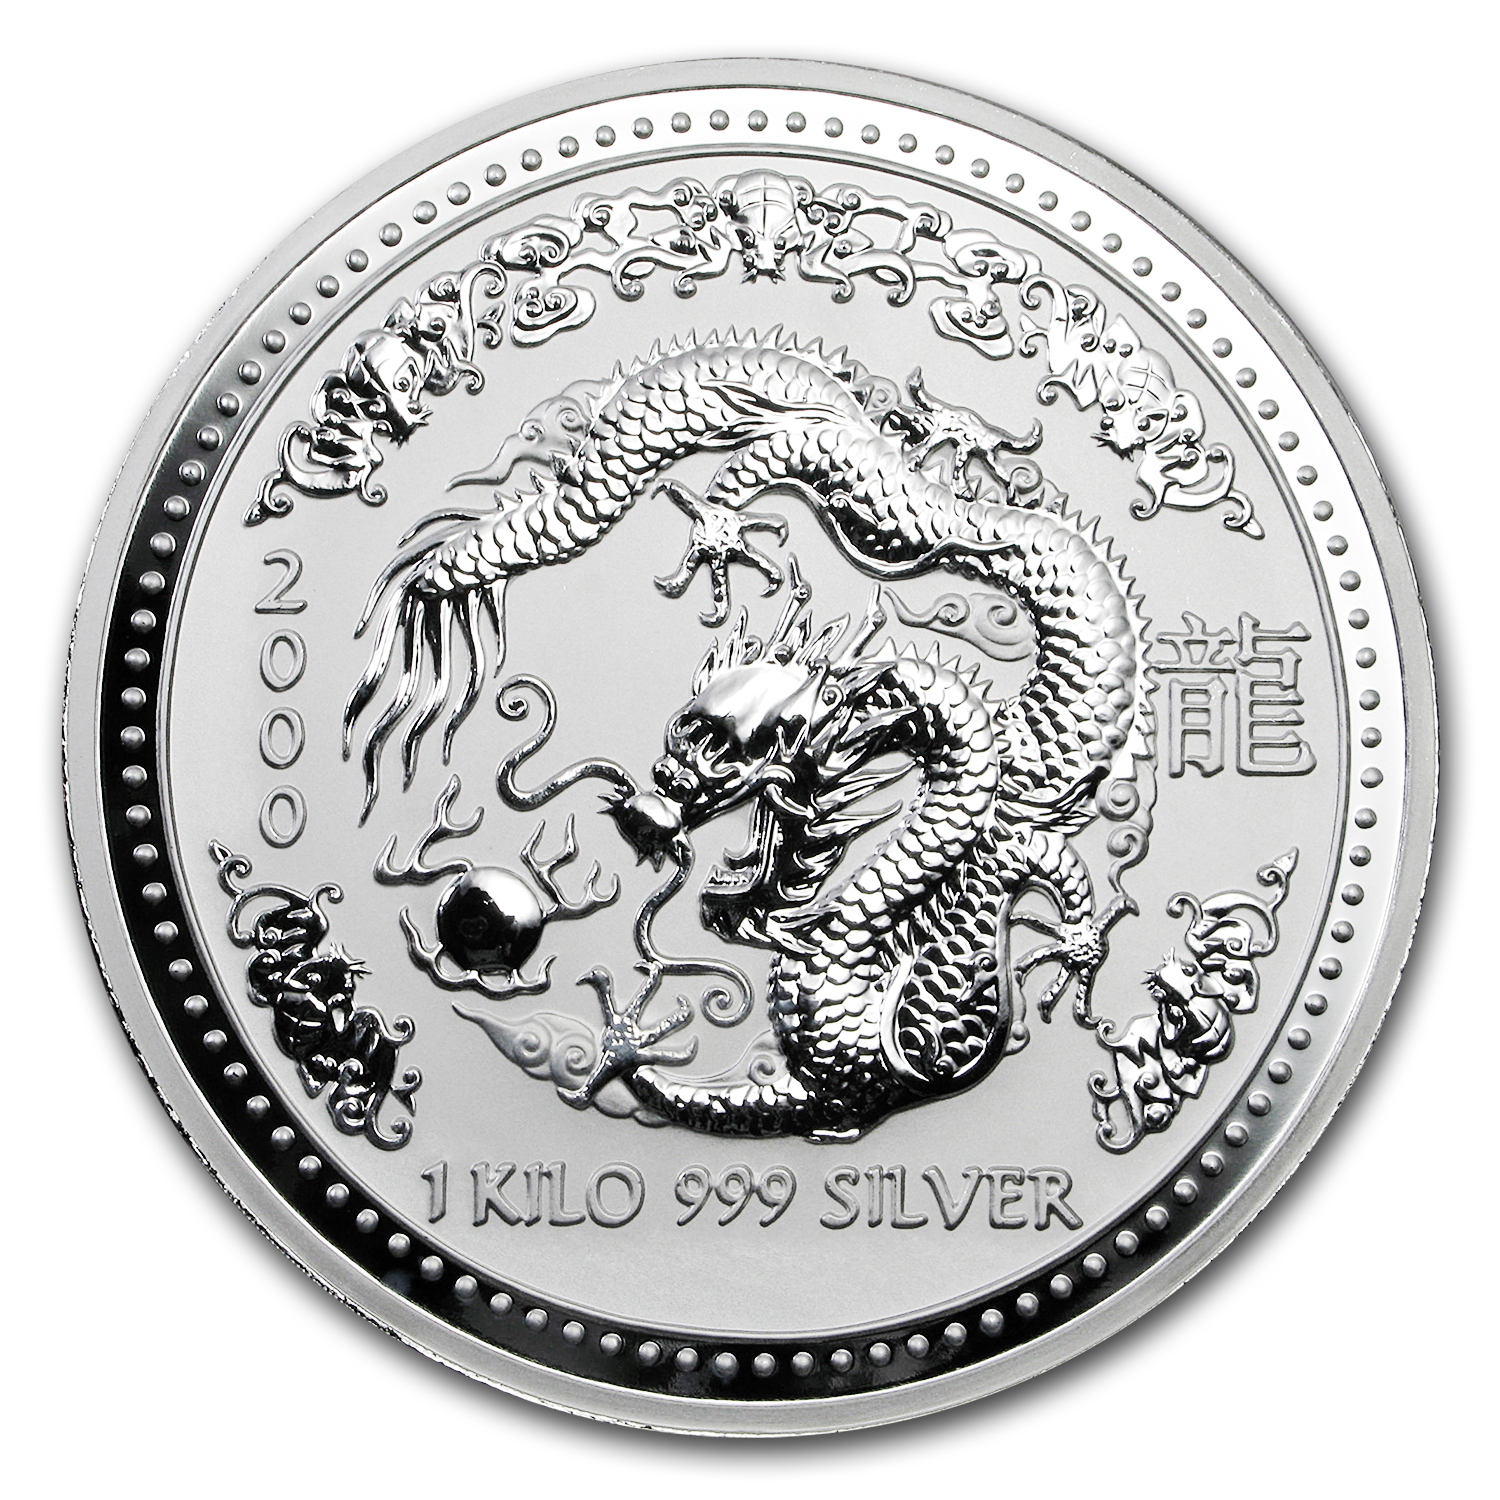 2000 1 Kilo Silver Lunar Year of the Dragon (Series I)